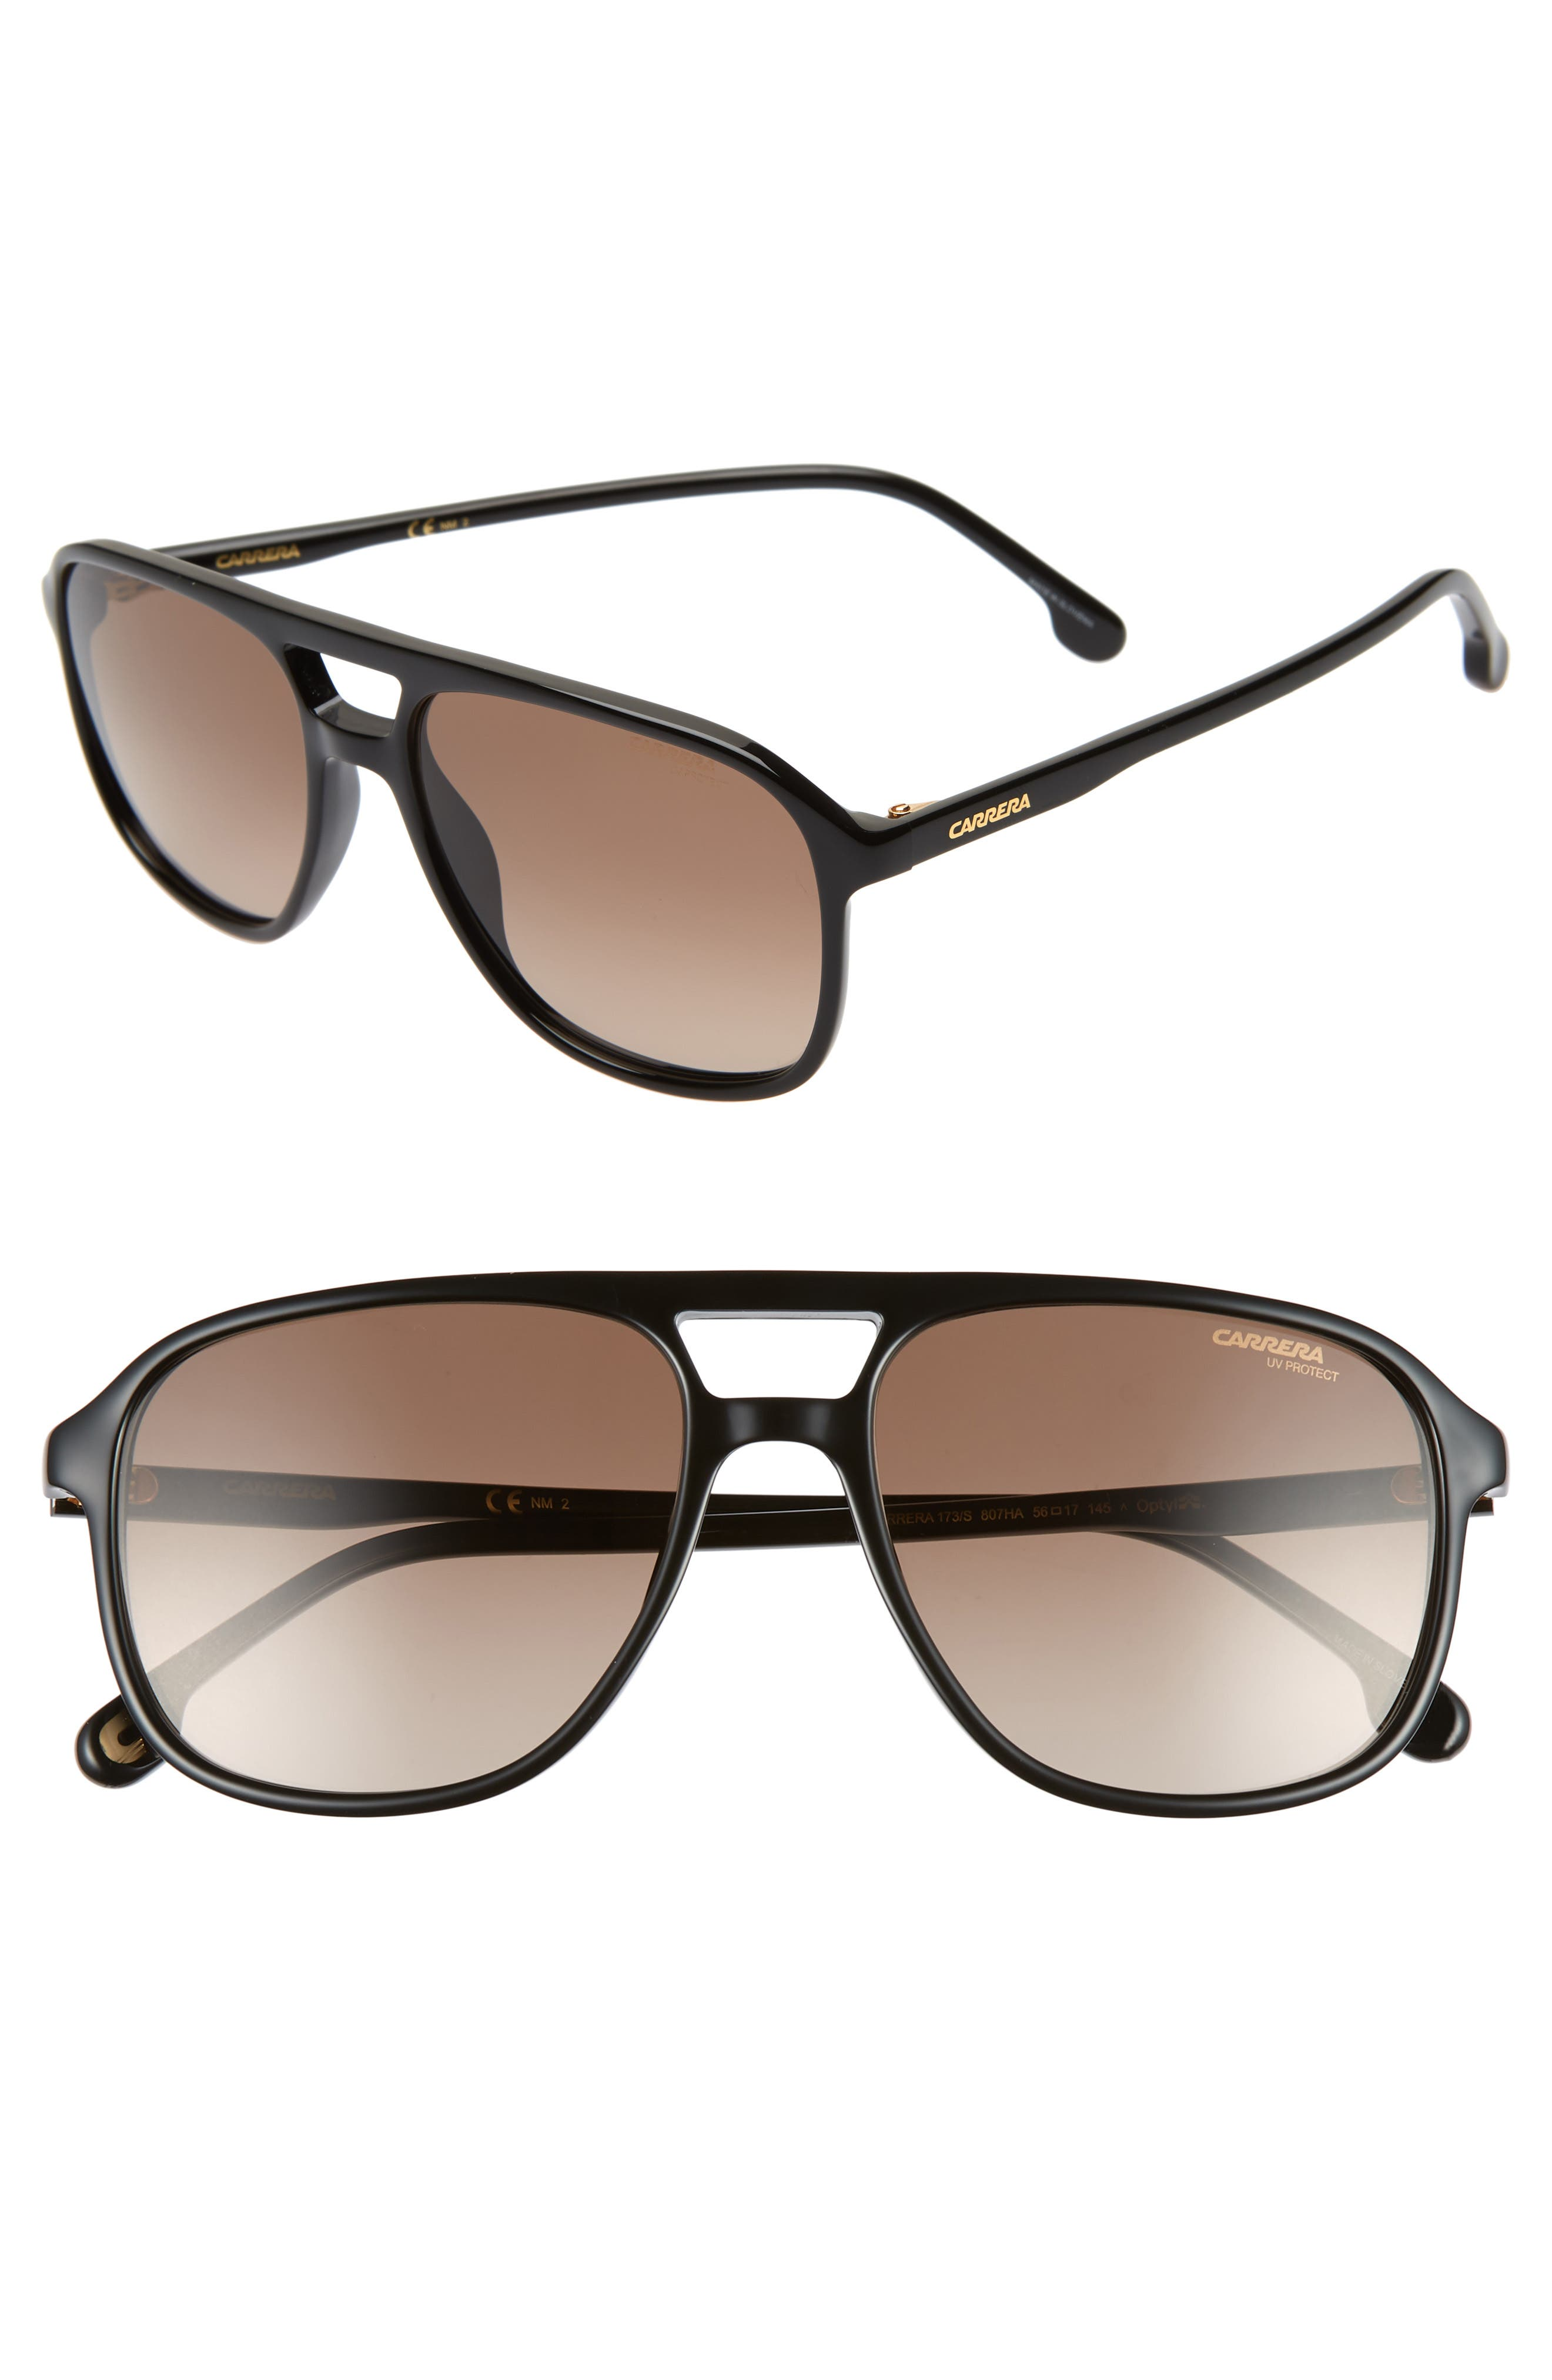 Carrera Eyewear 5m Aviator Sunglasses -